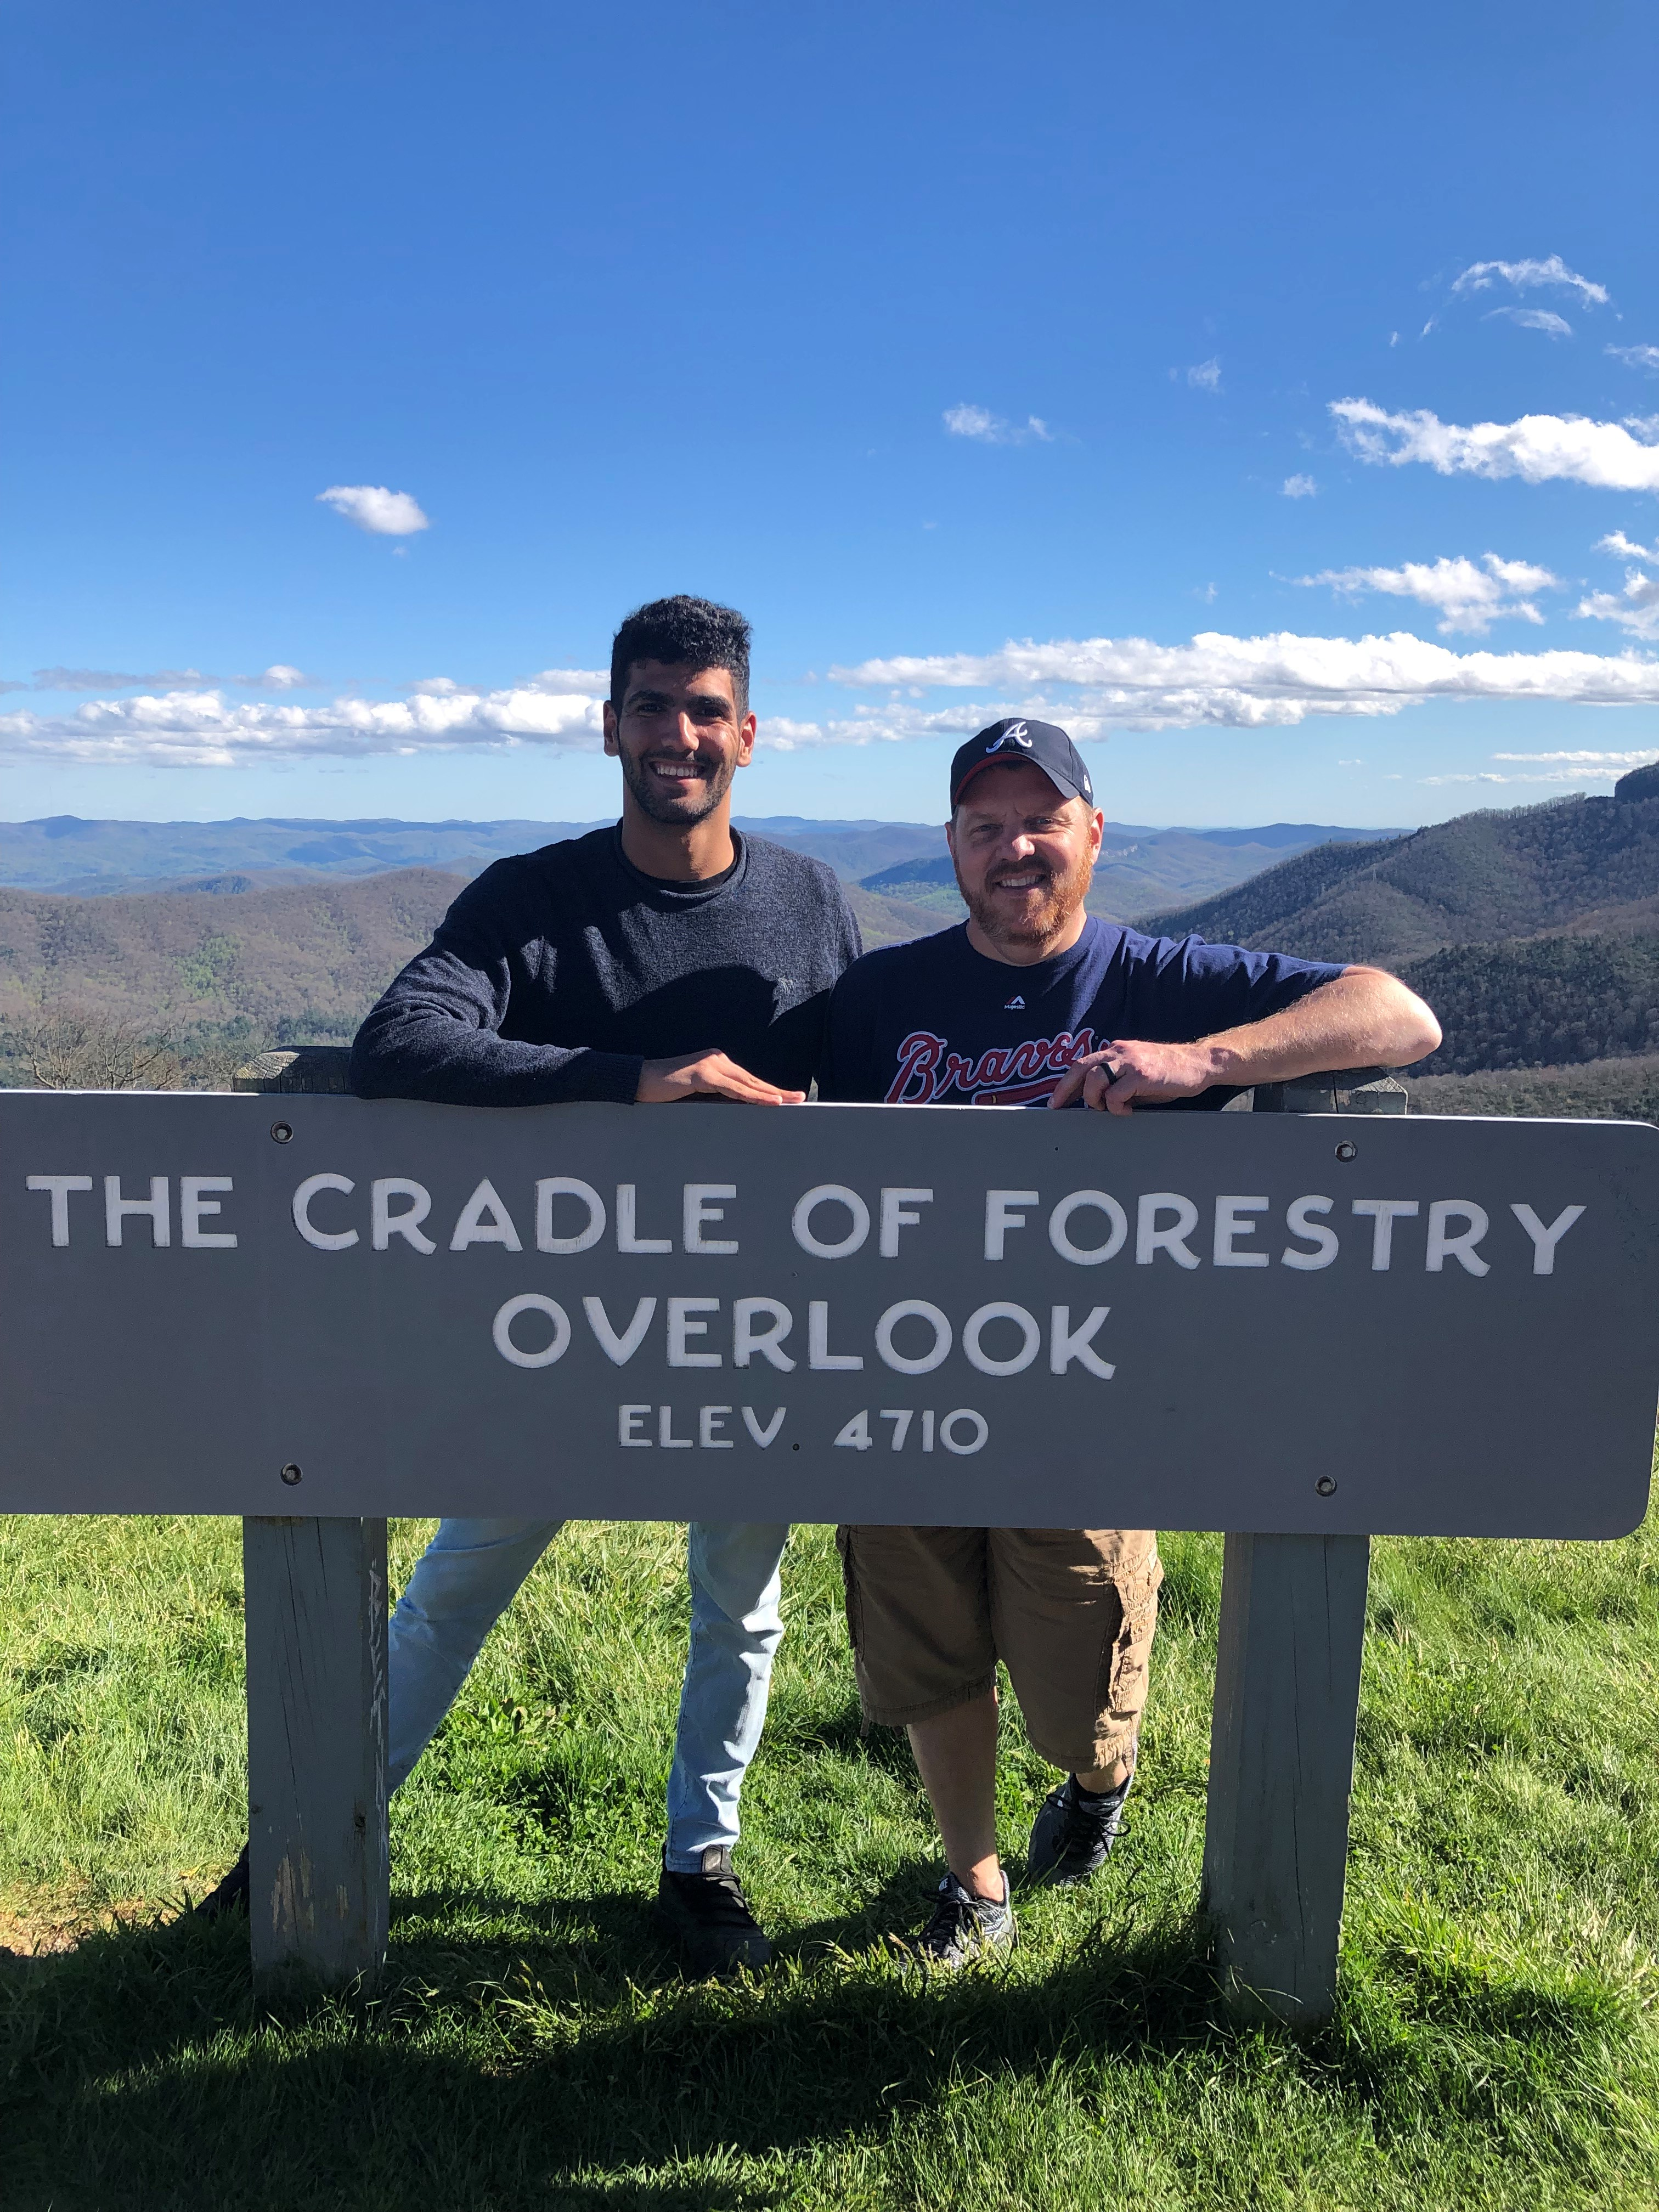 Ouail with host dad hiking at cradle of forestry overlook